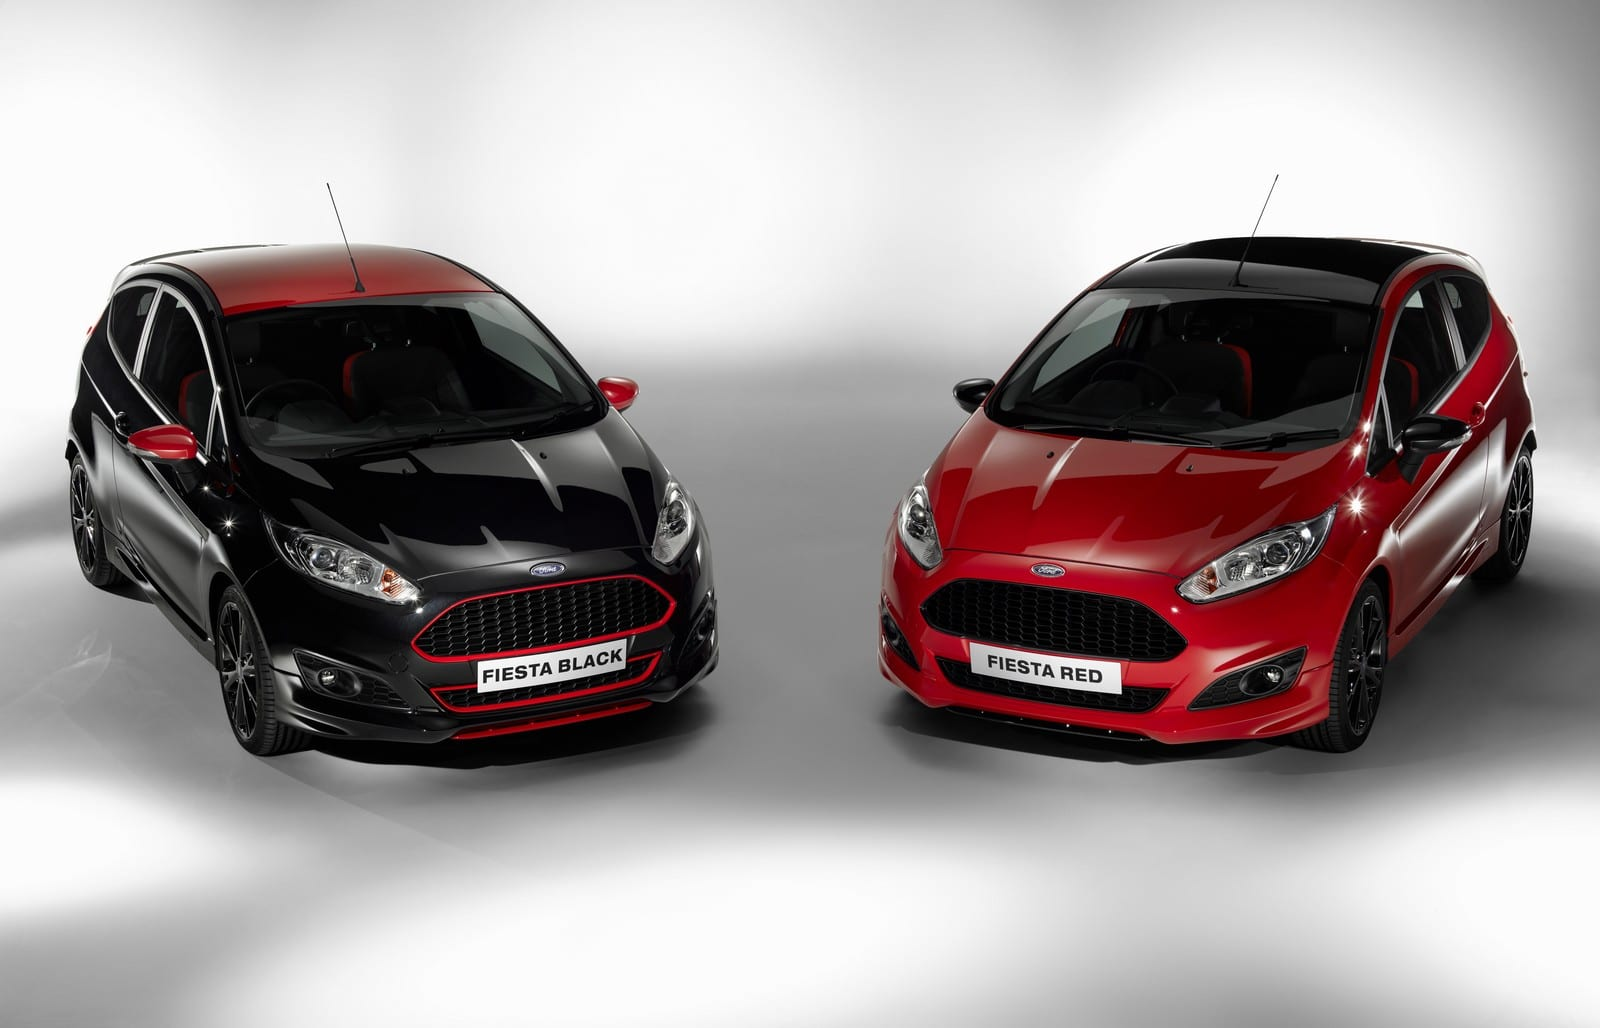 Ford Fiesta Red et Black Edition : un 1.0 EcoBoost encore optimisé